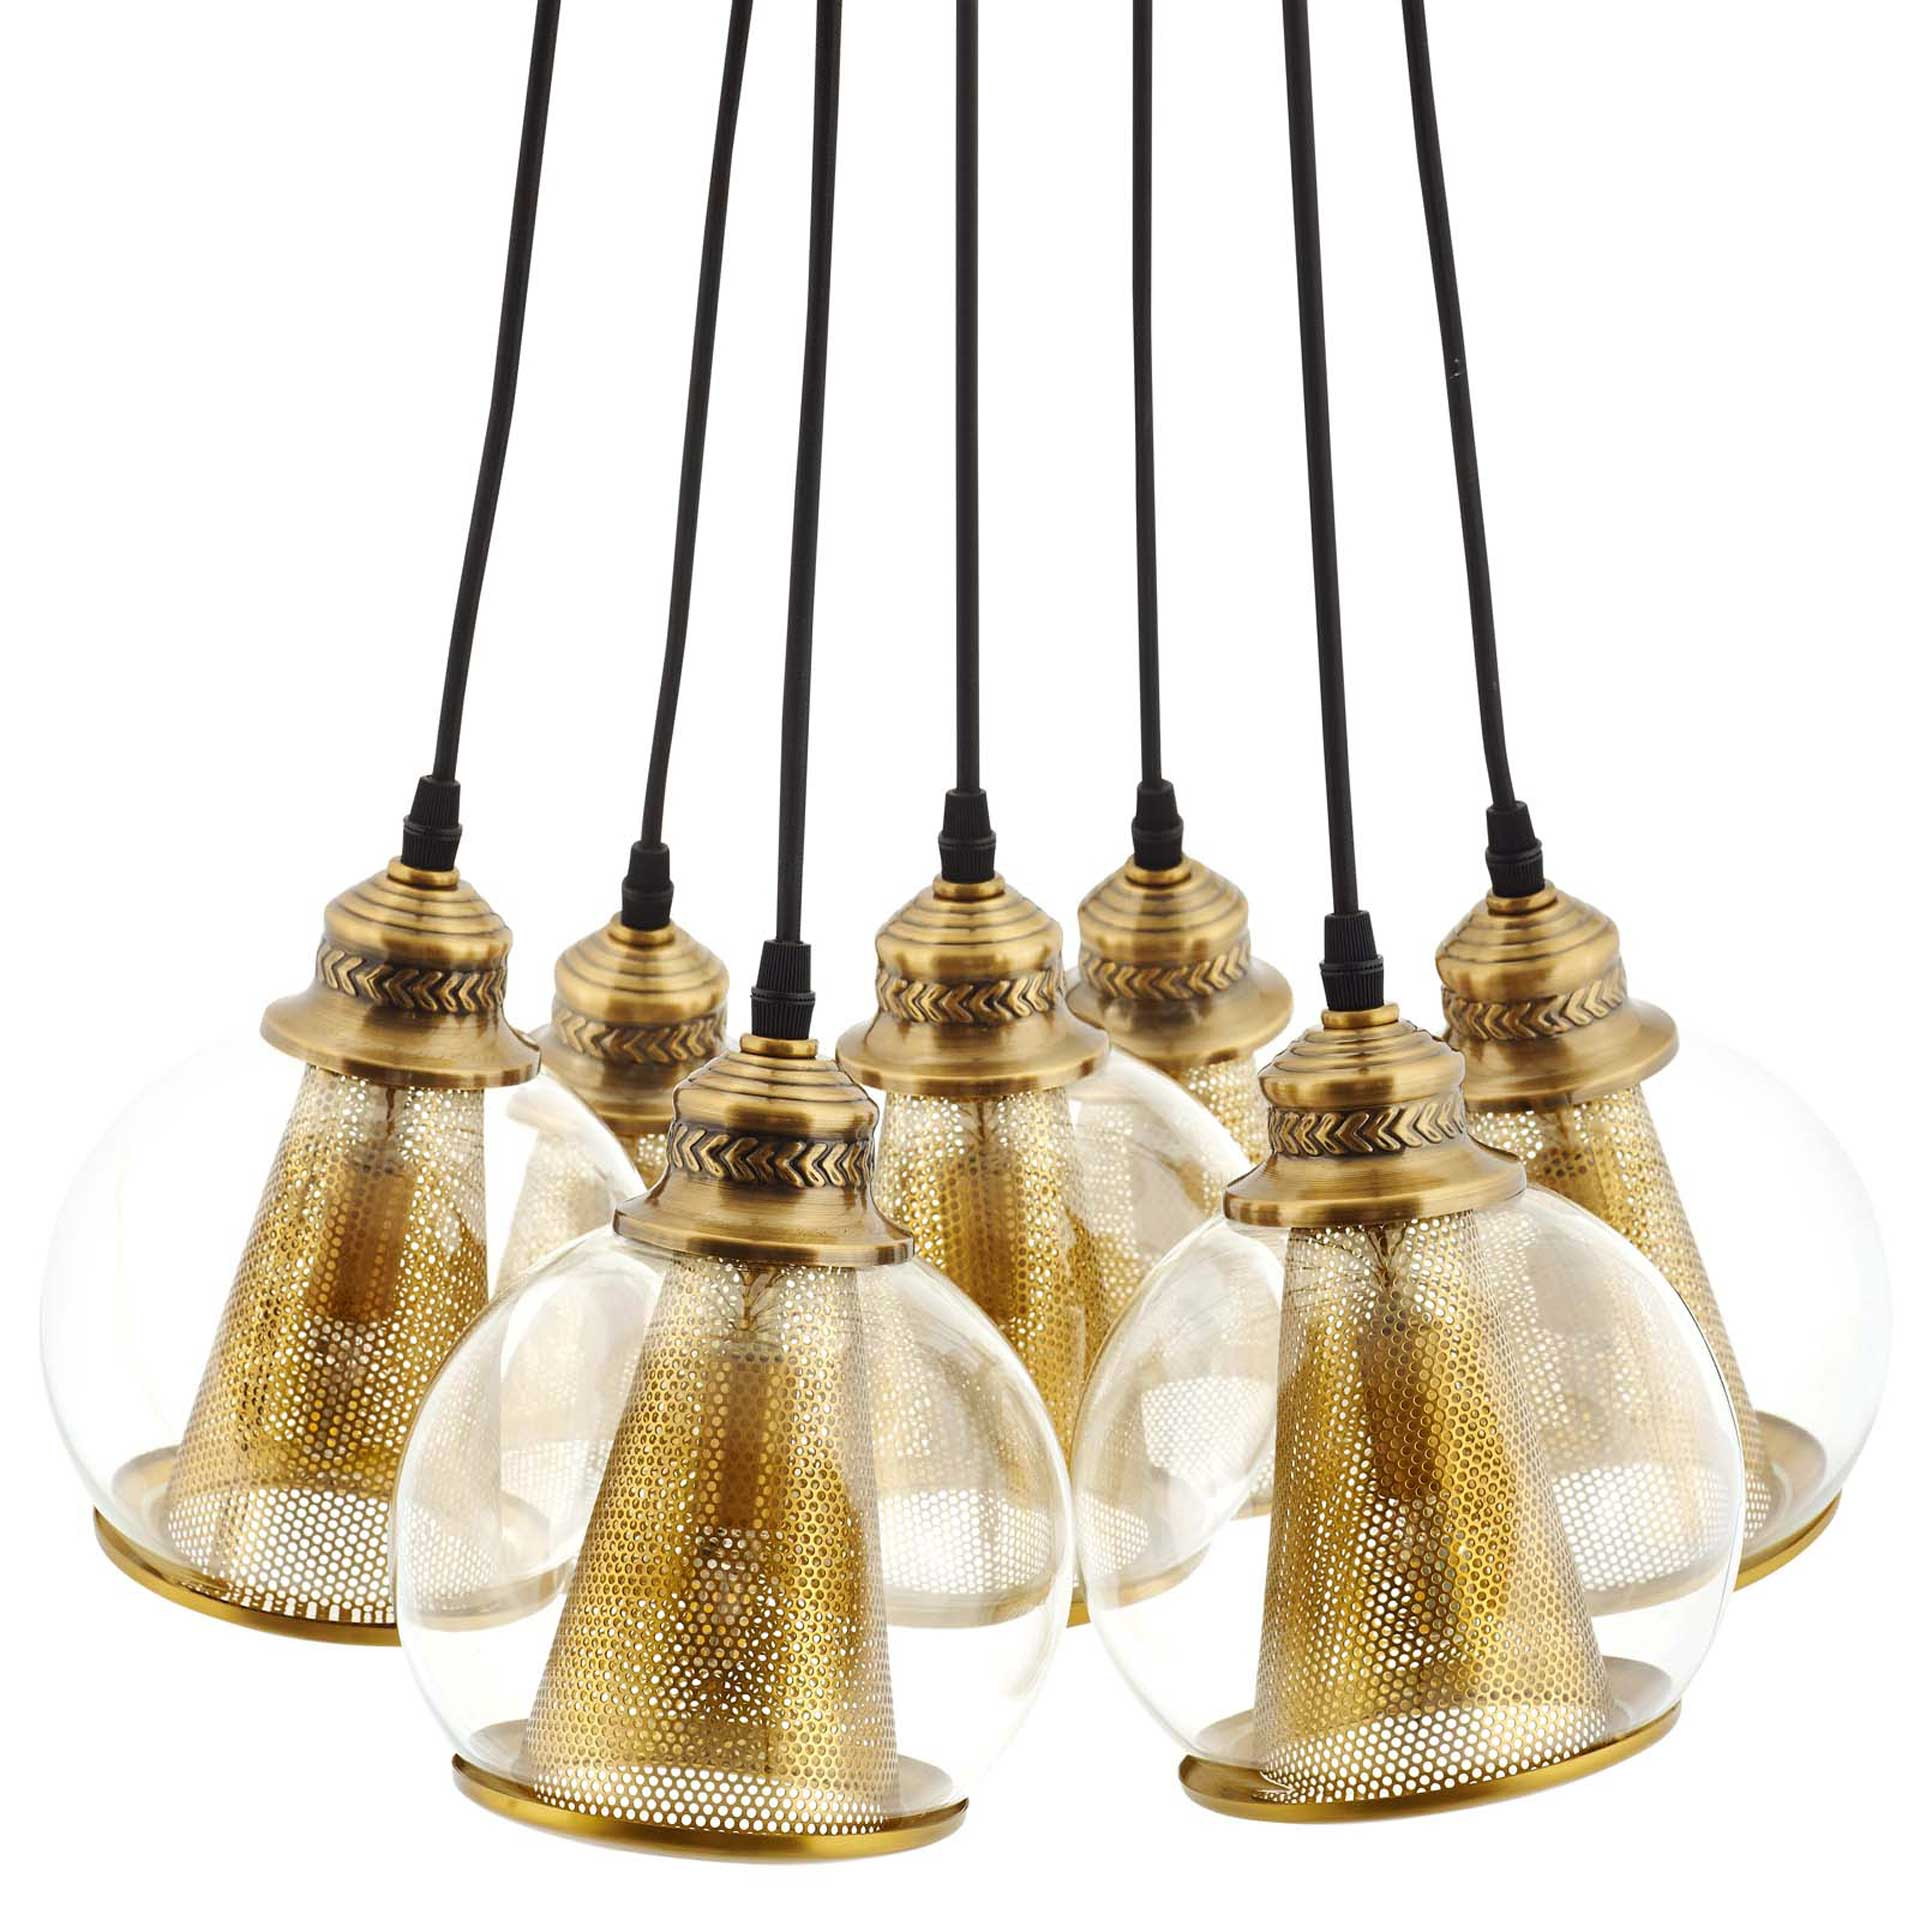 Phillip 7 Cone Chandelier Brass Gold/Black